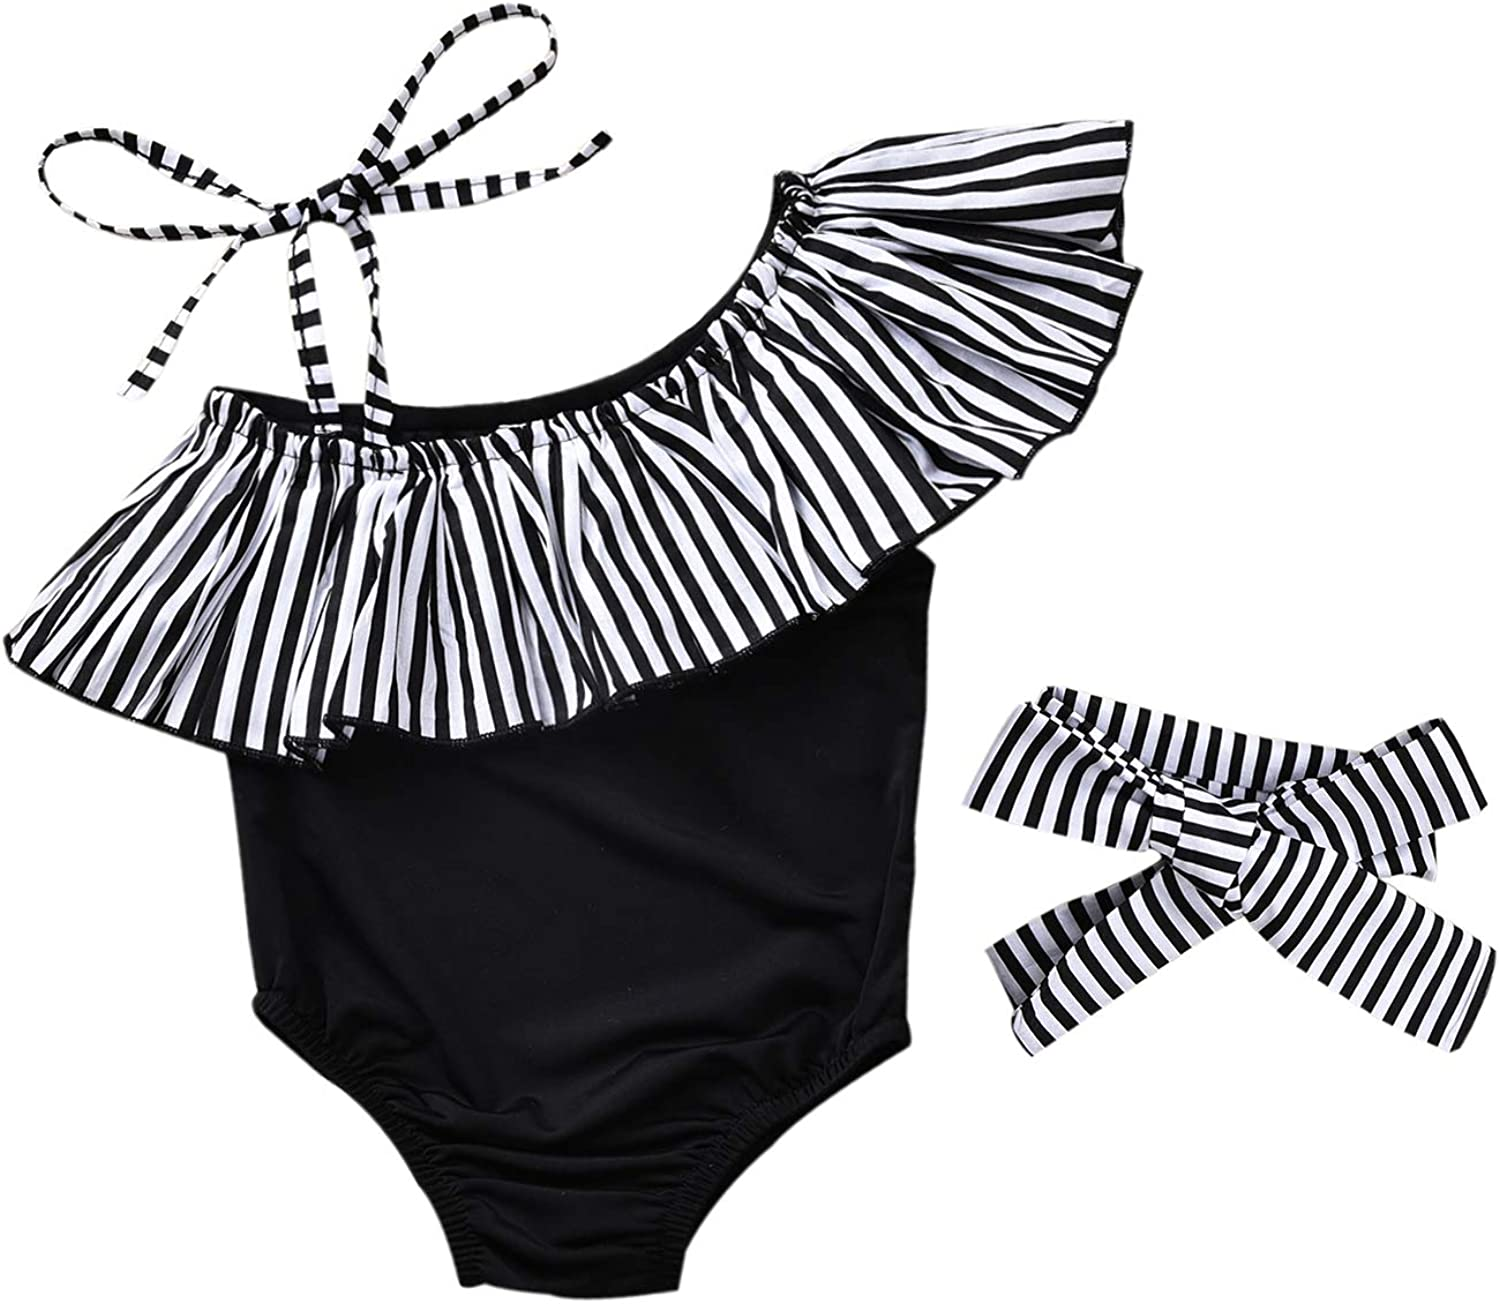 Toddler Baby Girl Tankini Swimsuit Two Piece Ruffle Leaf Swimwear Bathing Suit Beach Wear Outfits